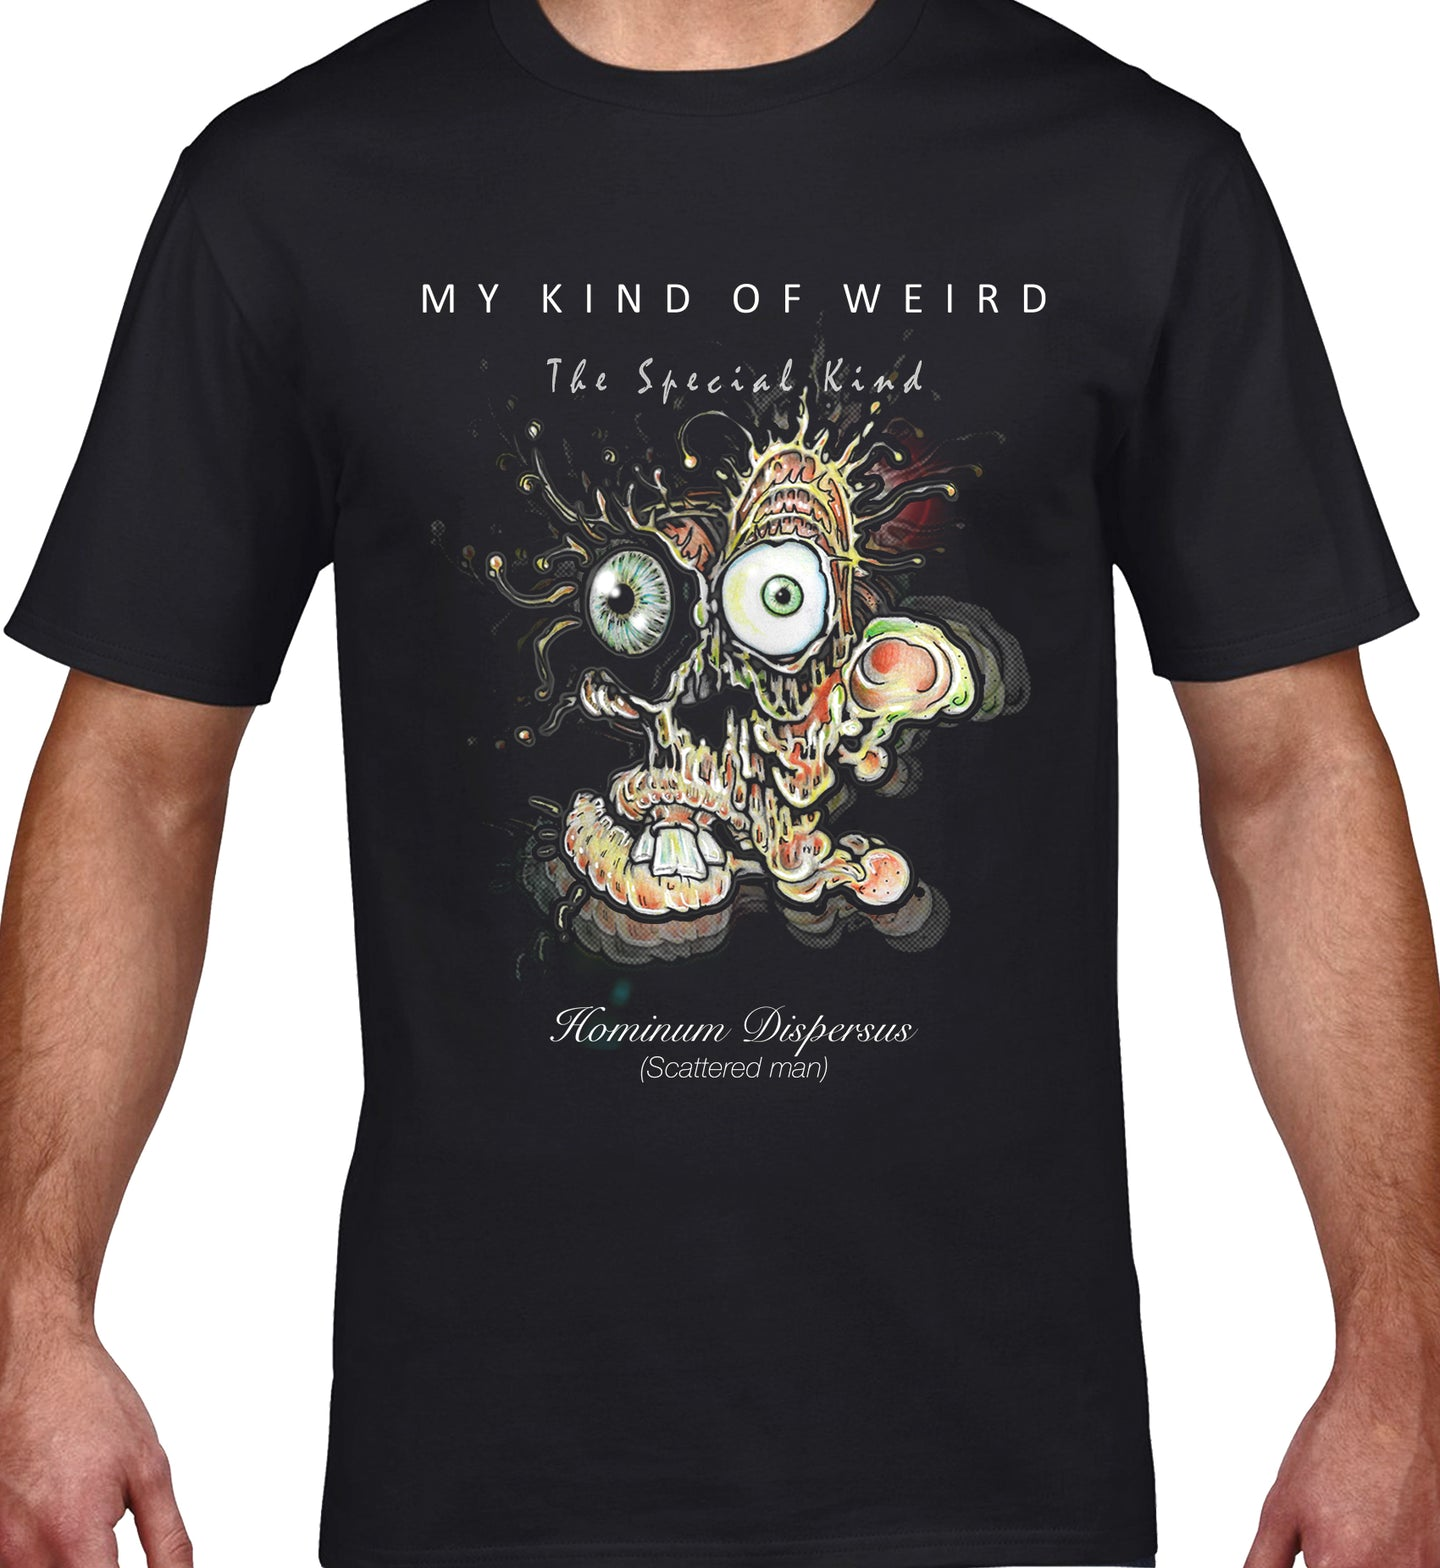 MY KIND OF WEIRD - SCATTERED MAN - MEN'S TEE